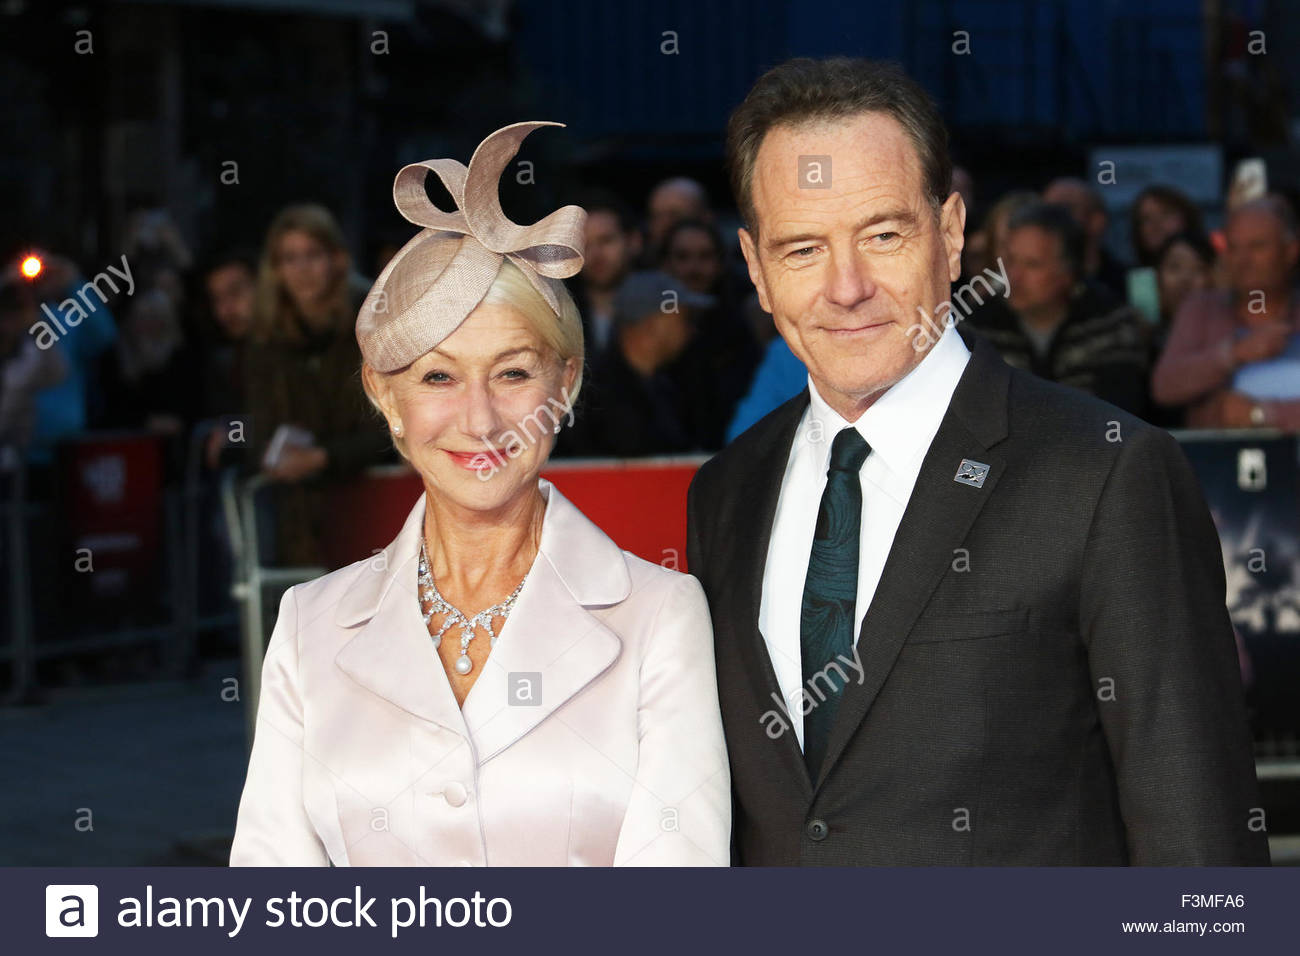 London, Great Britain. October 8th, 2015. ENGLAND, London: Helen Mirren and Bryan Cranston attend the London Film - Stock Image